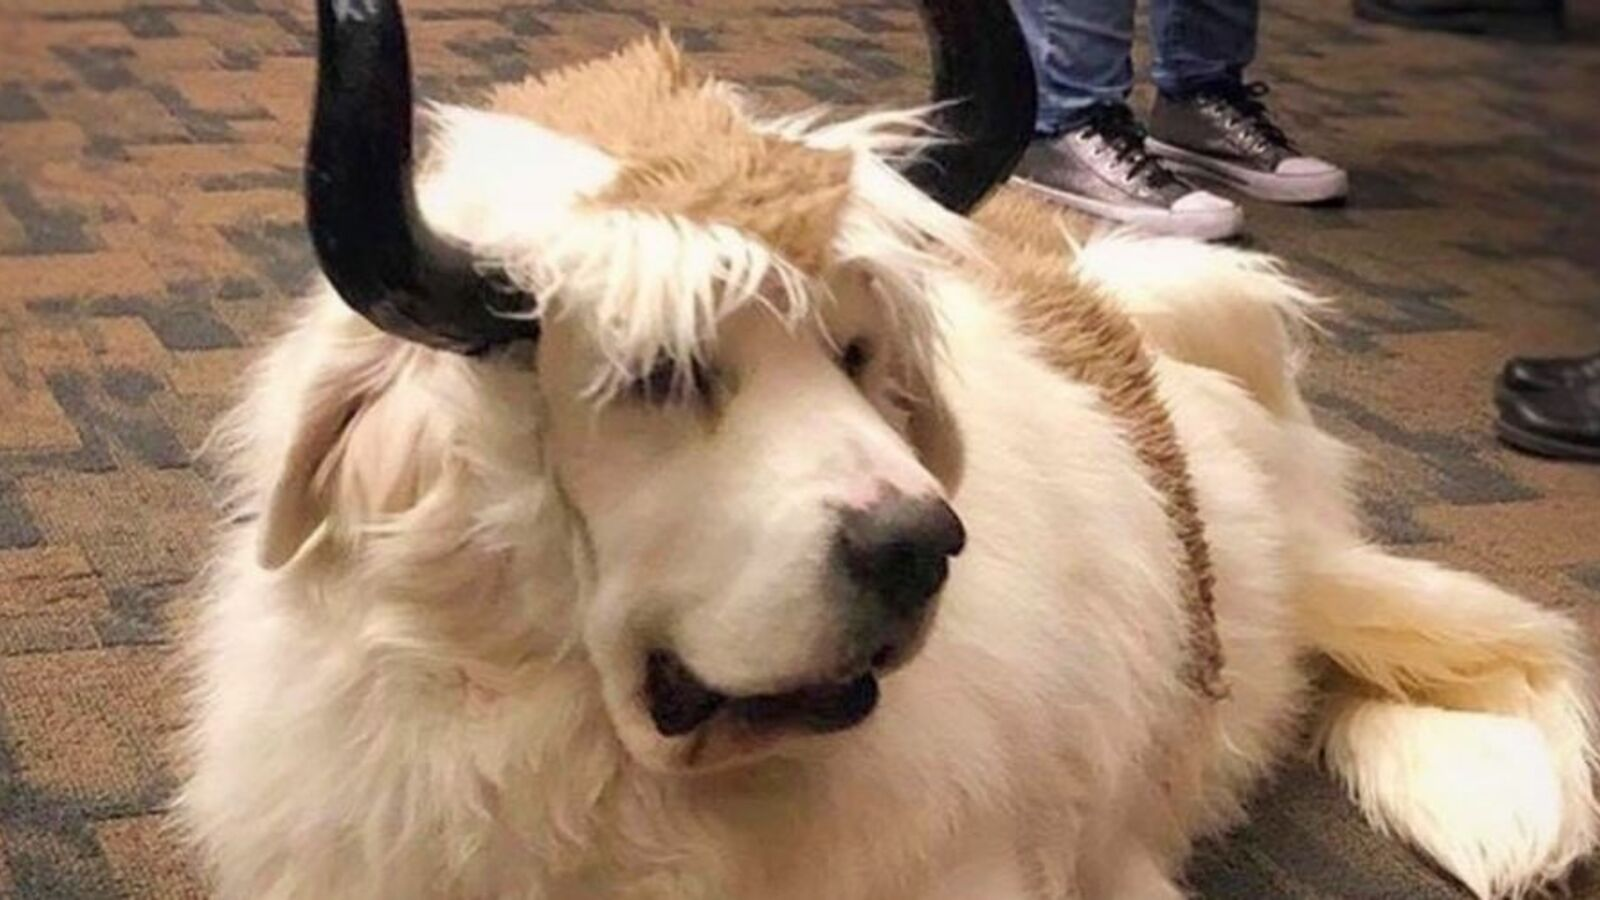 Dog Dresses As Appa In Adorable Avatar The Last Airbender Cosplay Cosplay Central